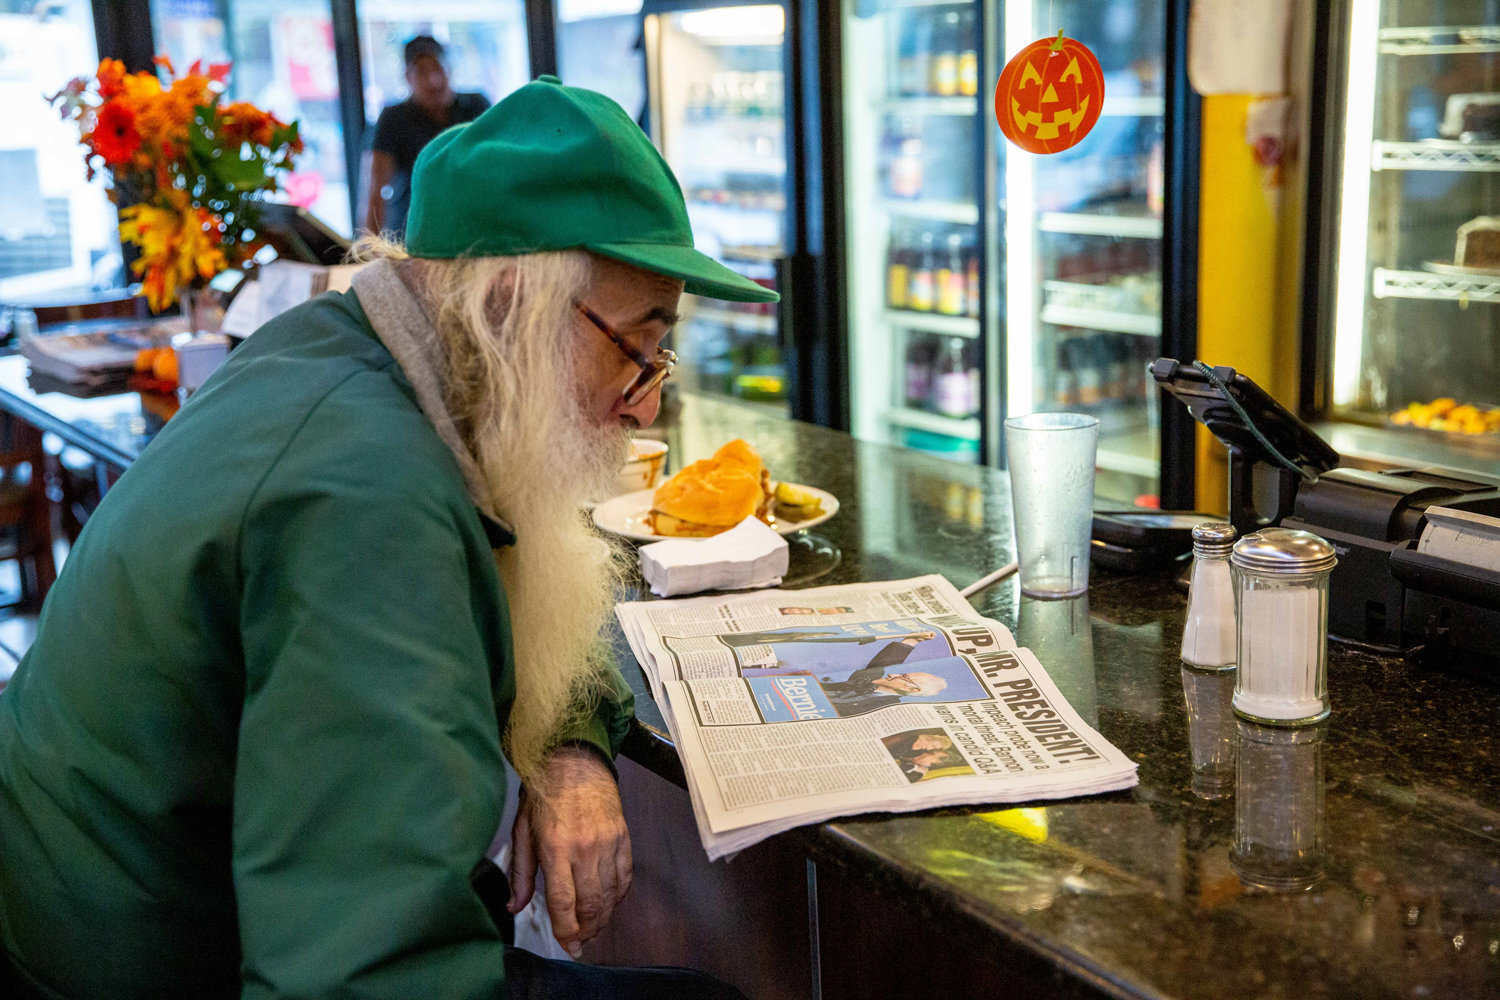 A Dale Diner regular reads a newspaper while enjoying a mid-afternoon meal at the historic, 24 hour eatery on West 231st Street eatery.